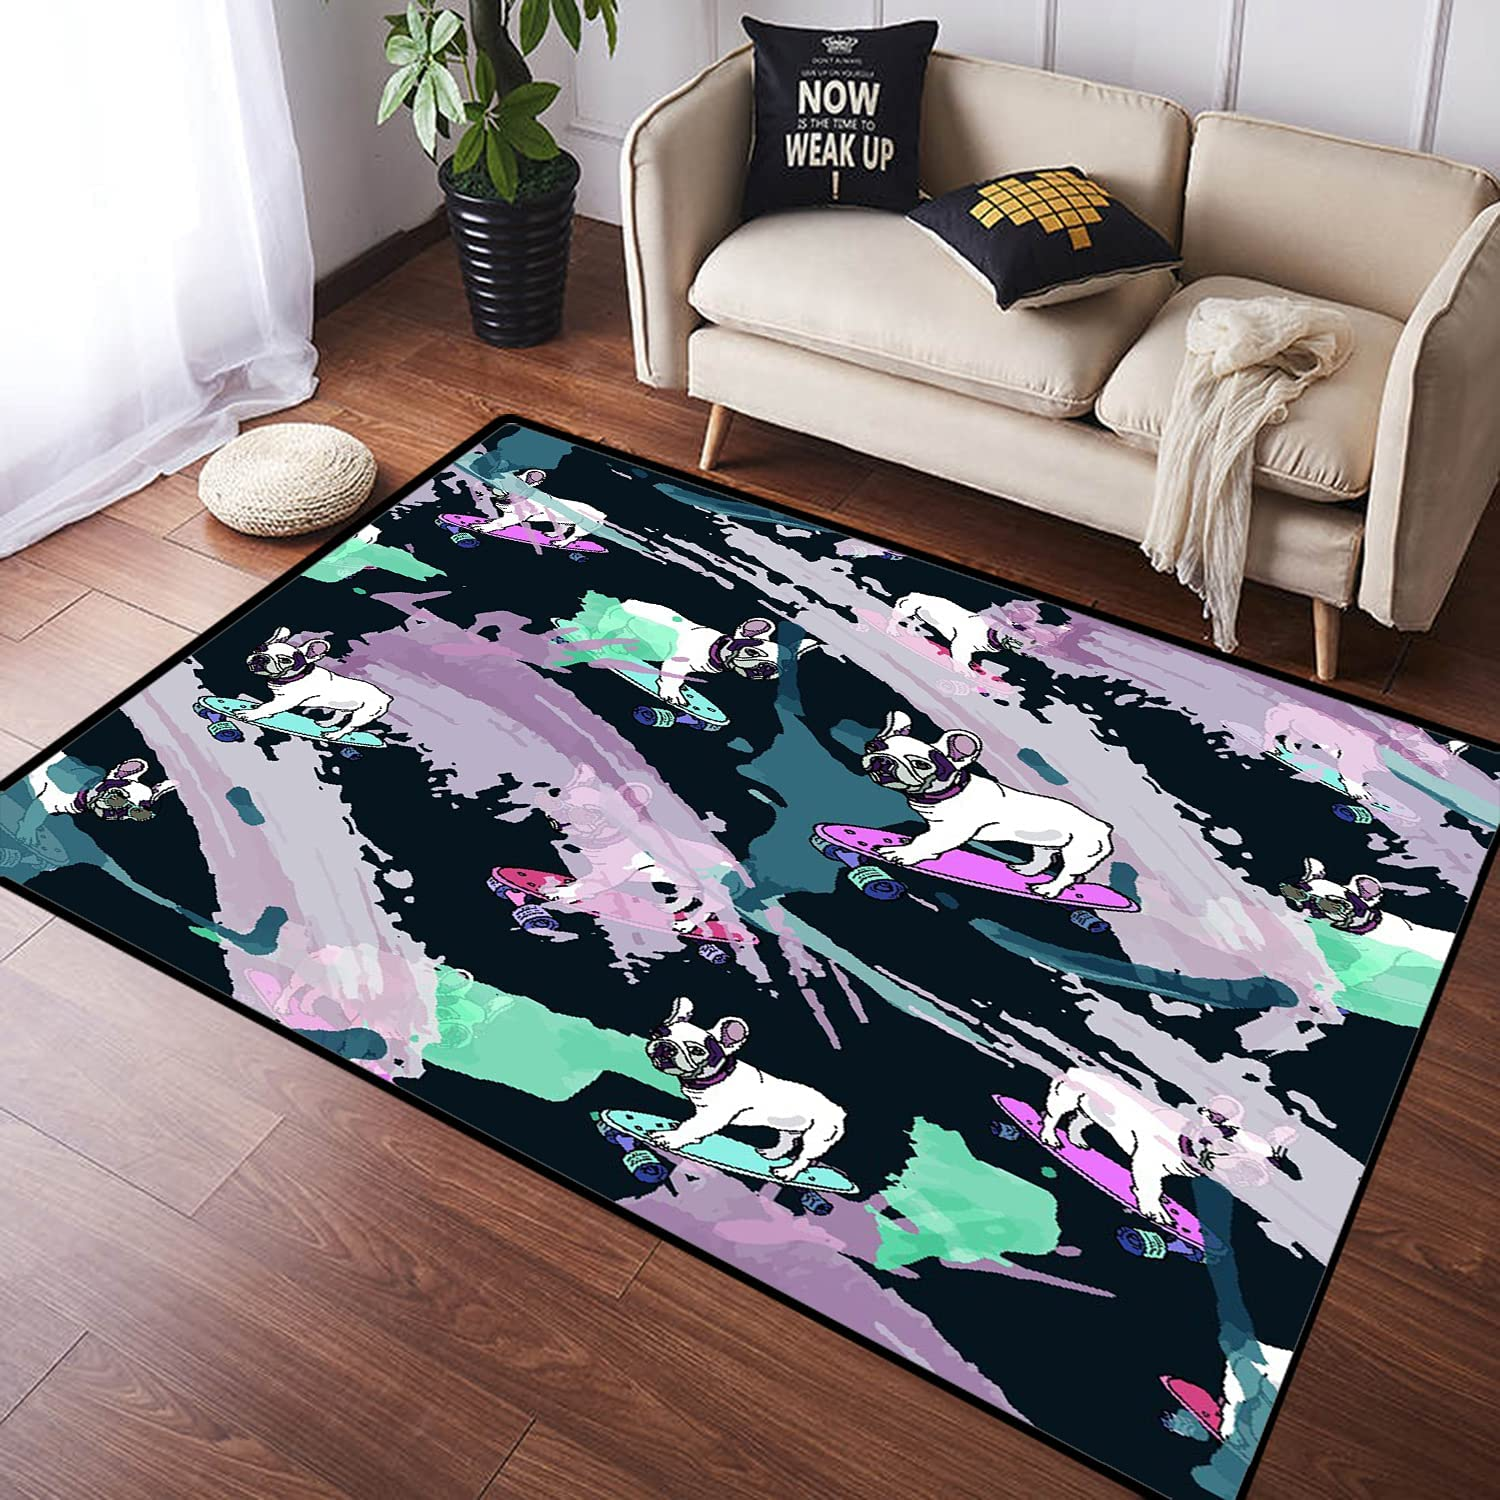 ZOMOY Long Factory outlet Floor Mat Max 89% OFF Carpet Seam French Skateboard Bulldog Paint